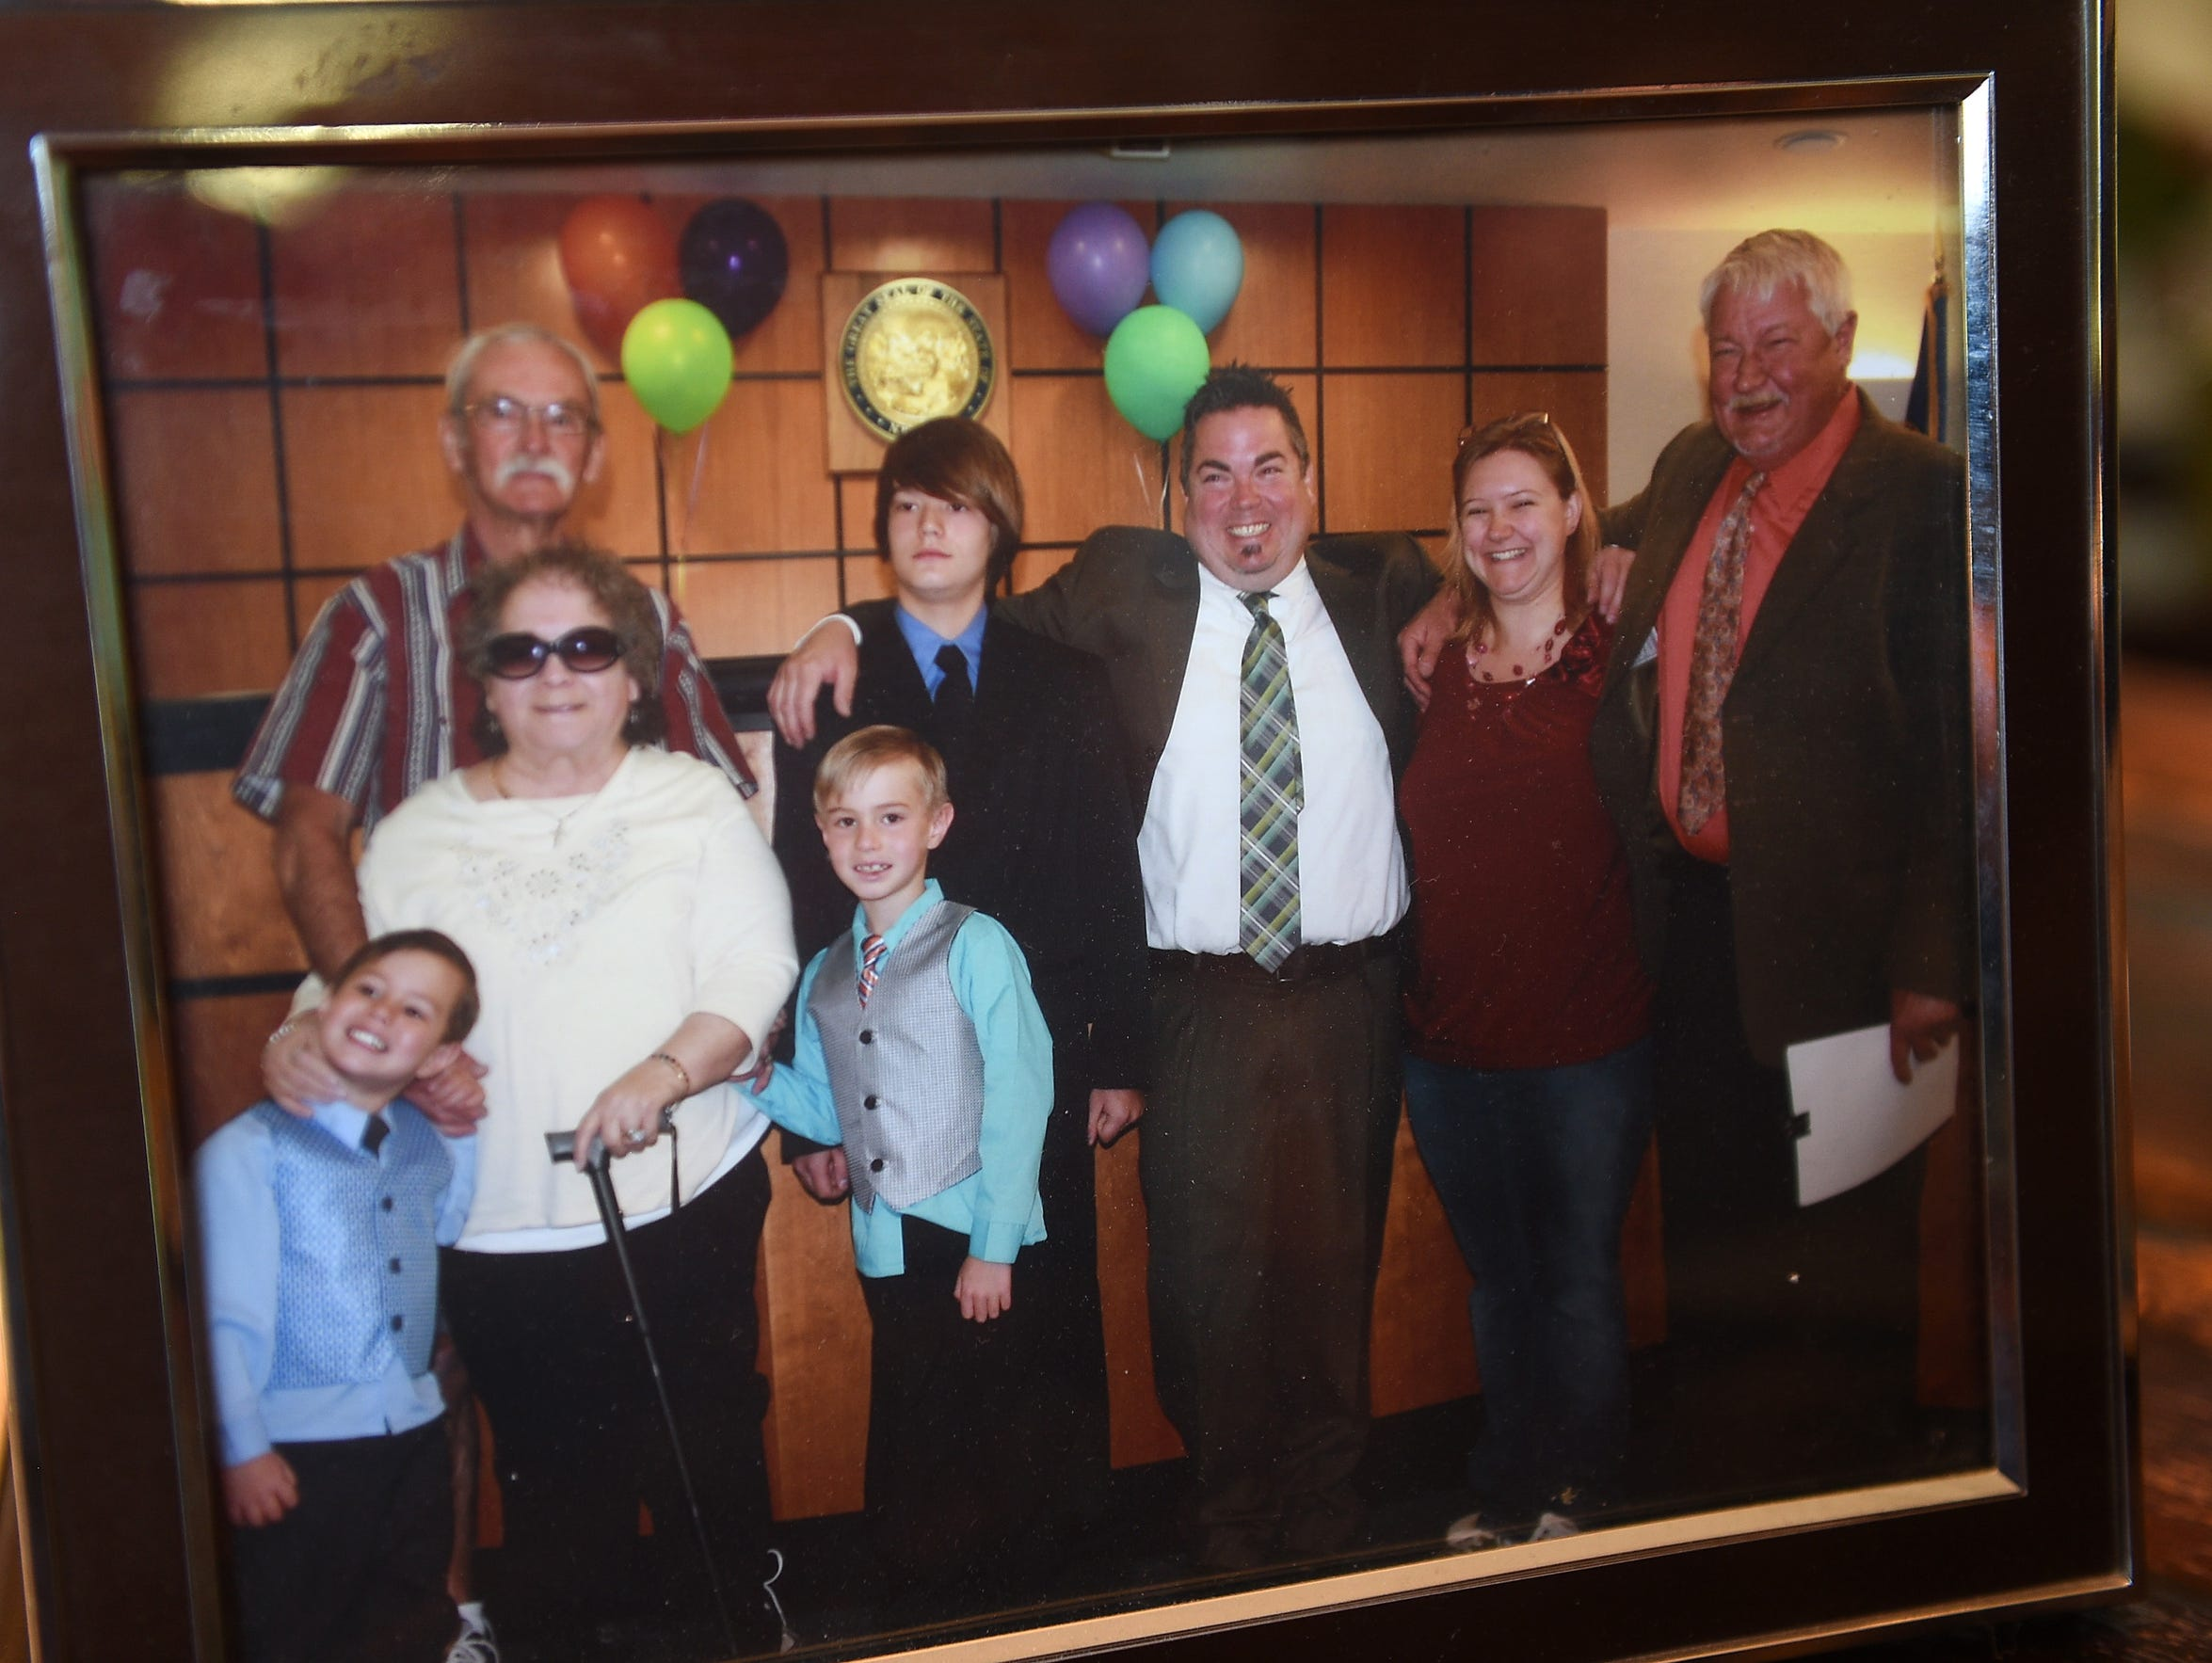 A photo from adoption day with the Douglass/Janowski